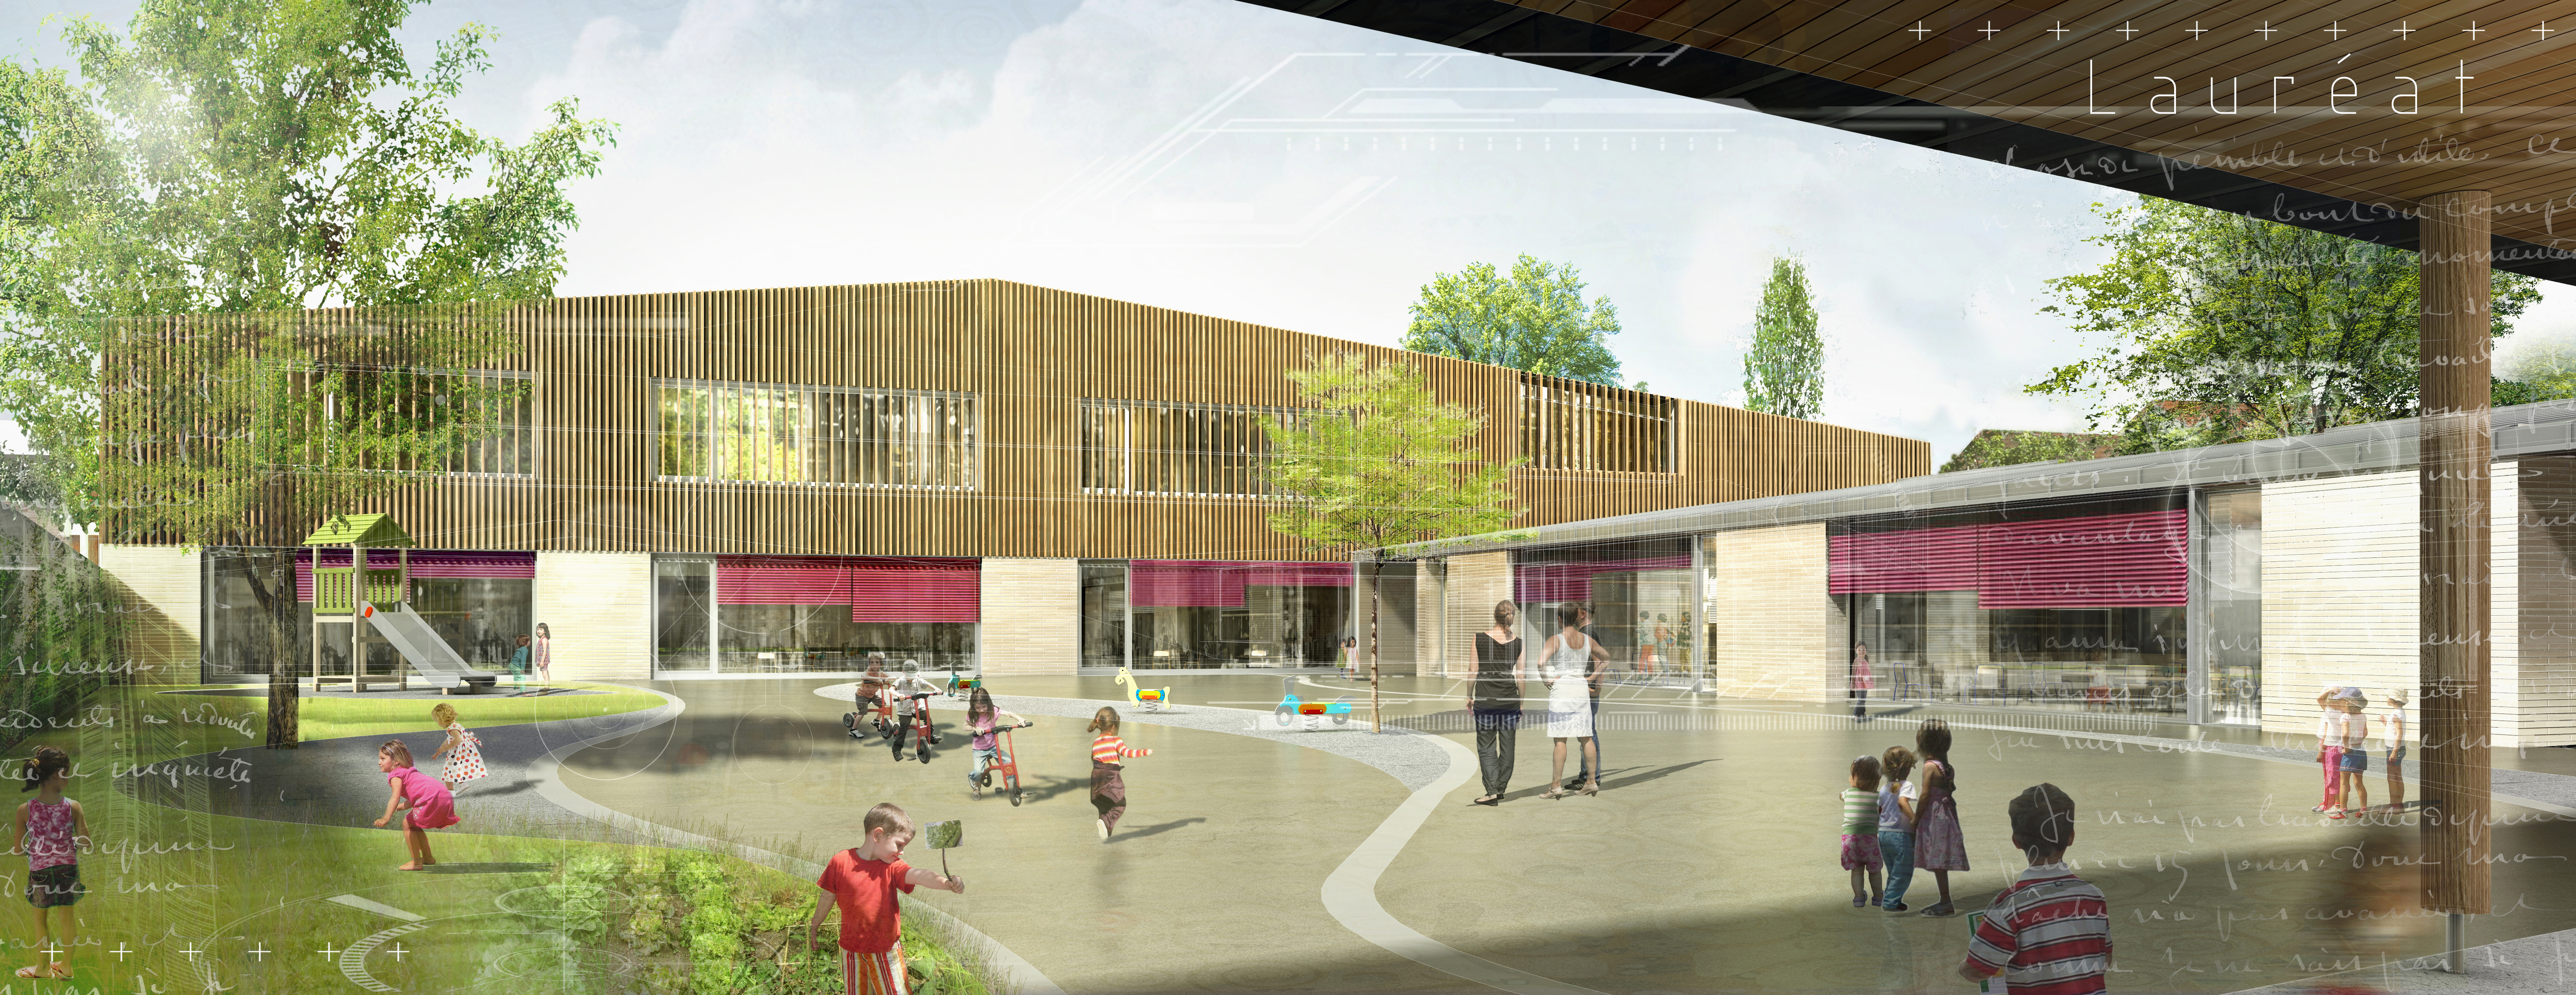 INTERSENS - MARGERIE & PASSQUET - Ecole Maternelle - Concours - Chilly Mazarin - image d'Architectur